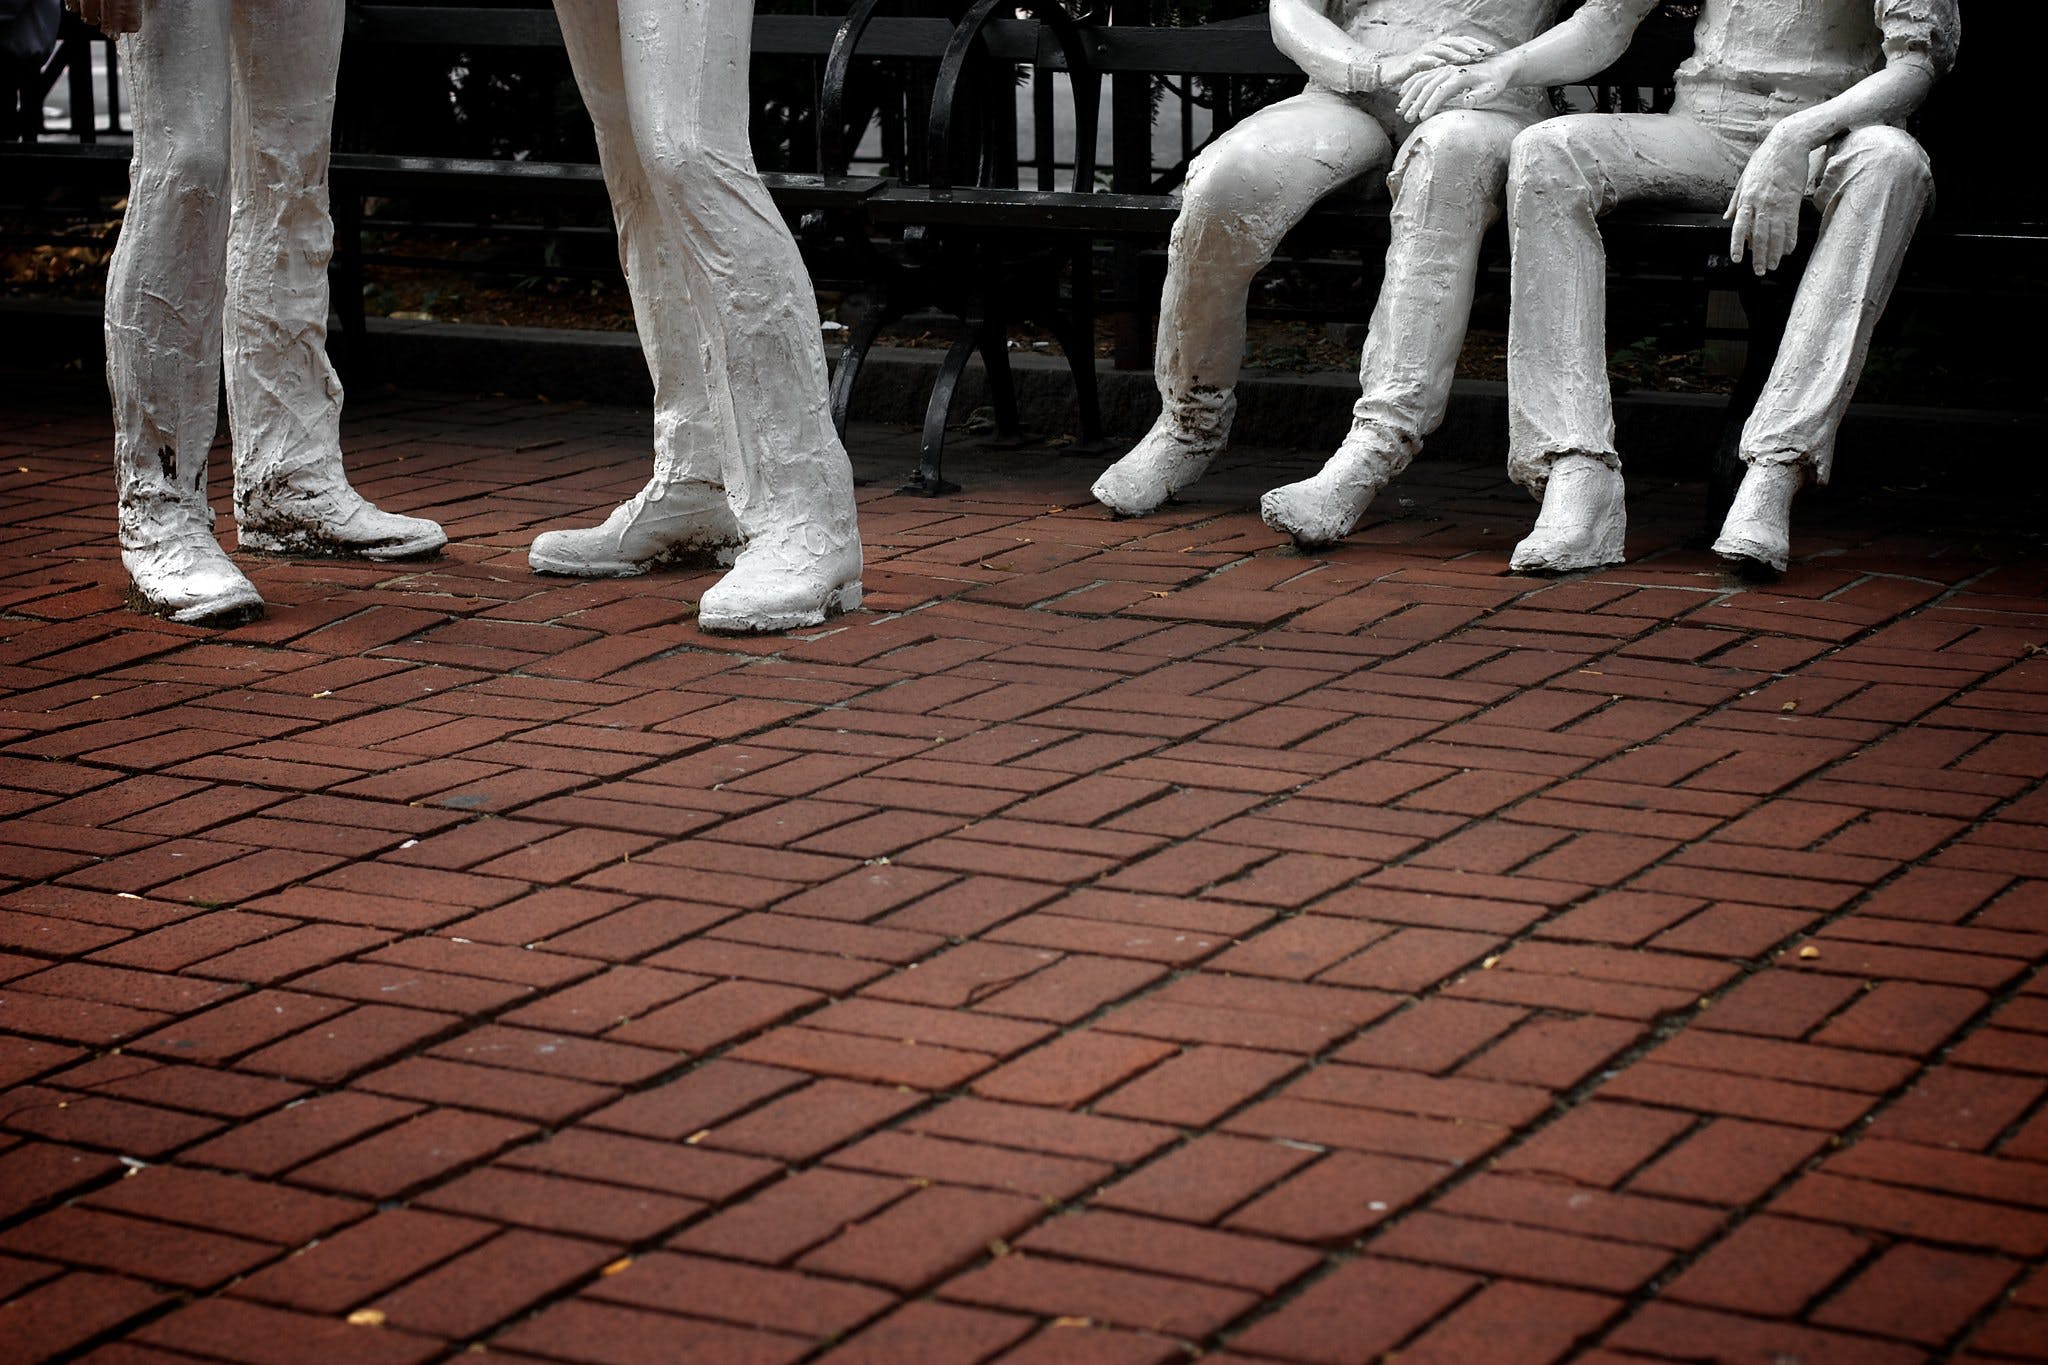 """A low shot of George Segal's """"Gay Liberation Monument"""" at the Stonewall Inn. Public sex played a key role in early queer history during the post-Stonewall era."""